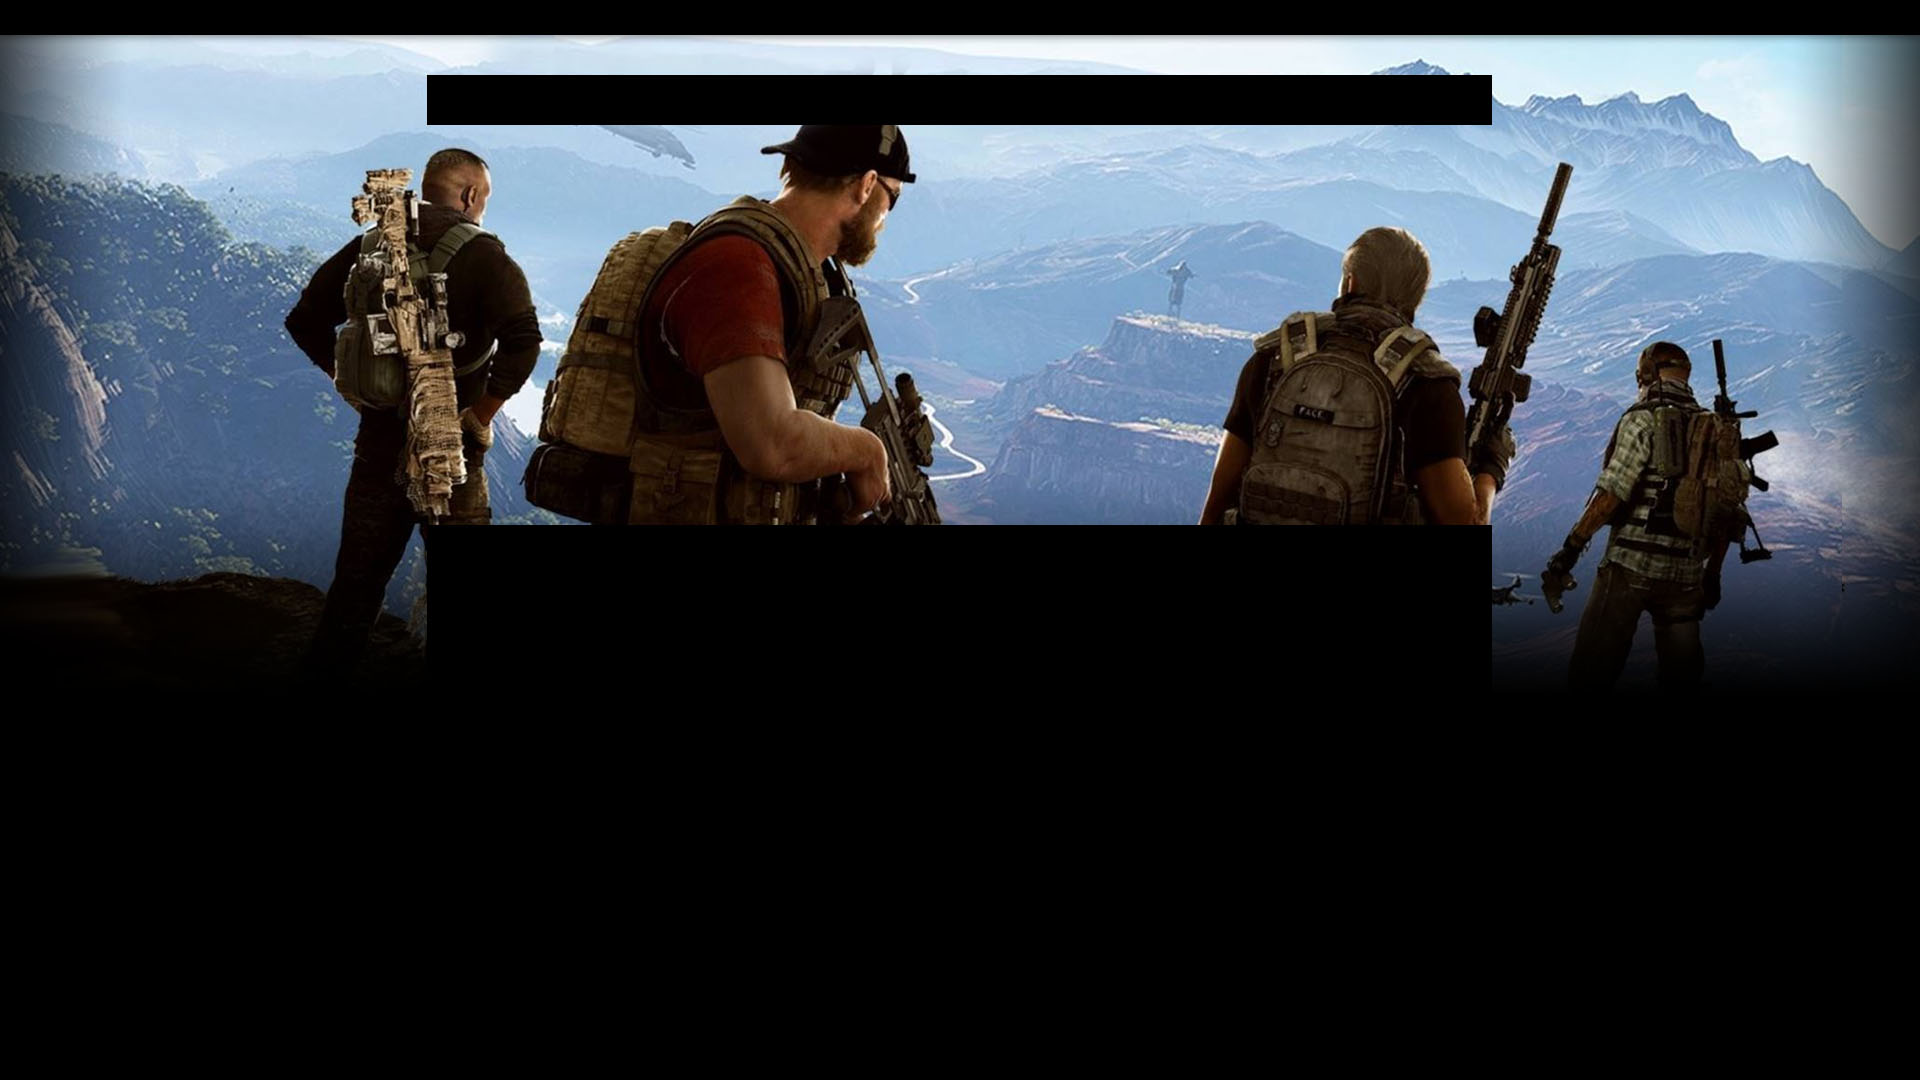 Ghost Recon Wildlands [PC/XBOX ONE/PS4] video game